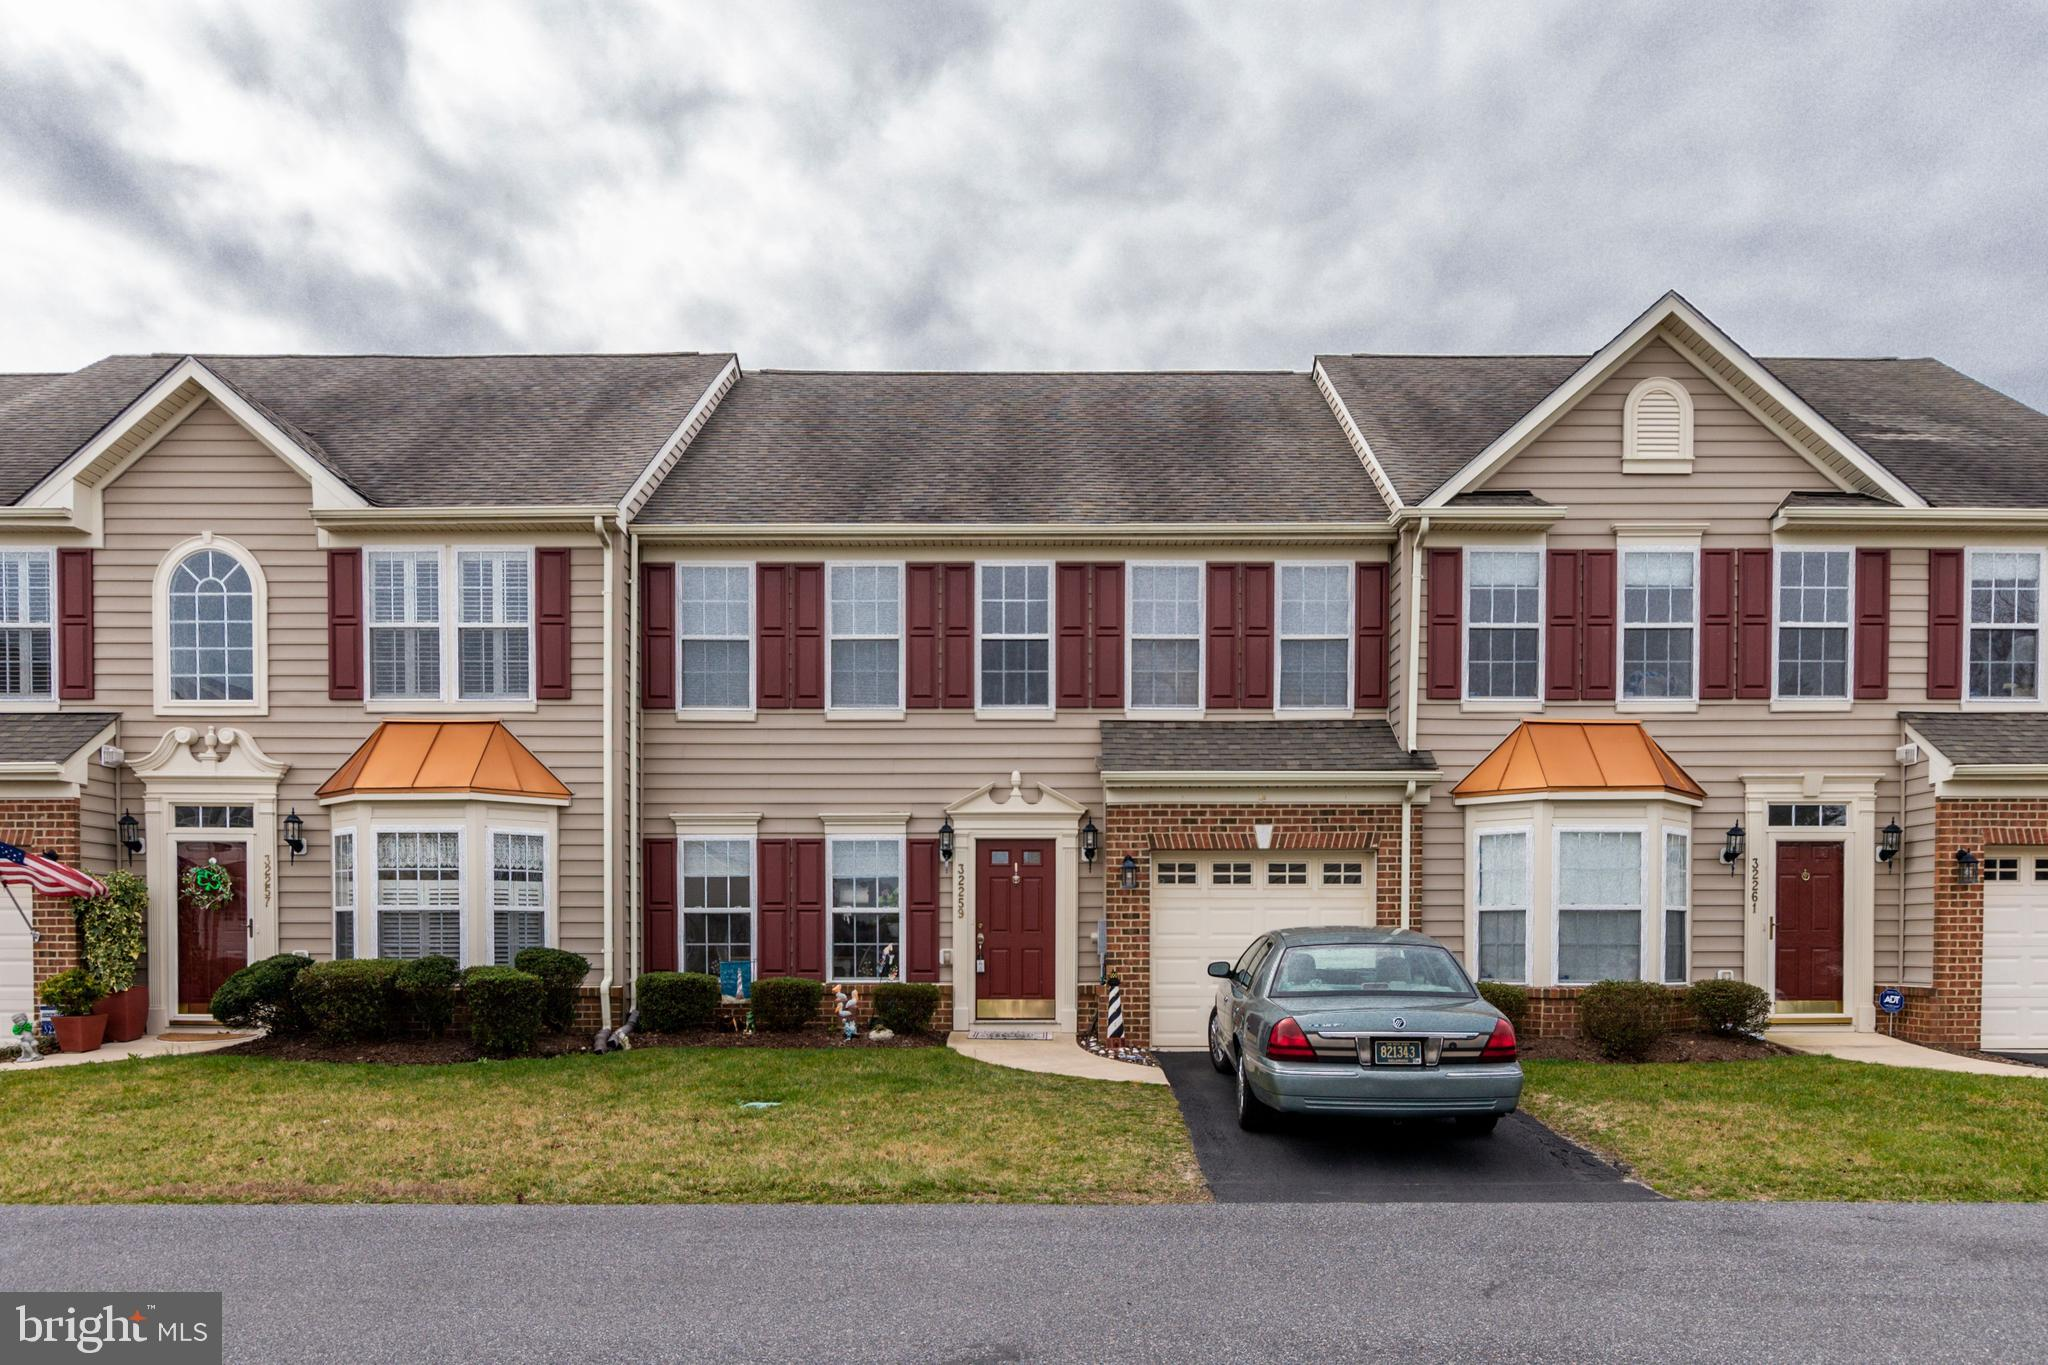 Beautiful 3 bedroom, 2 and a half bath townhome with a large first floor master suite with a walk-in